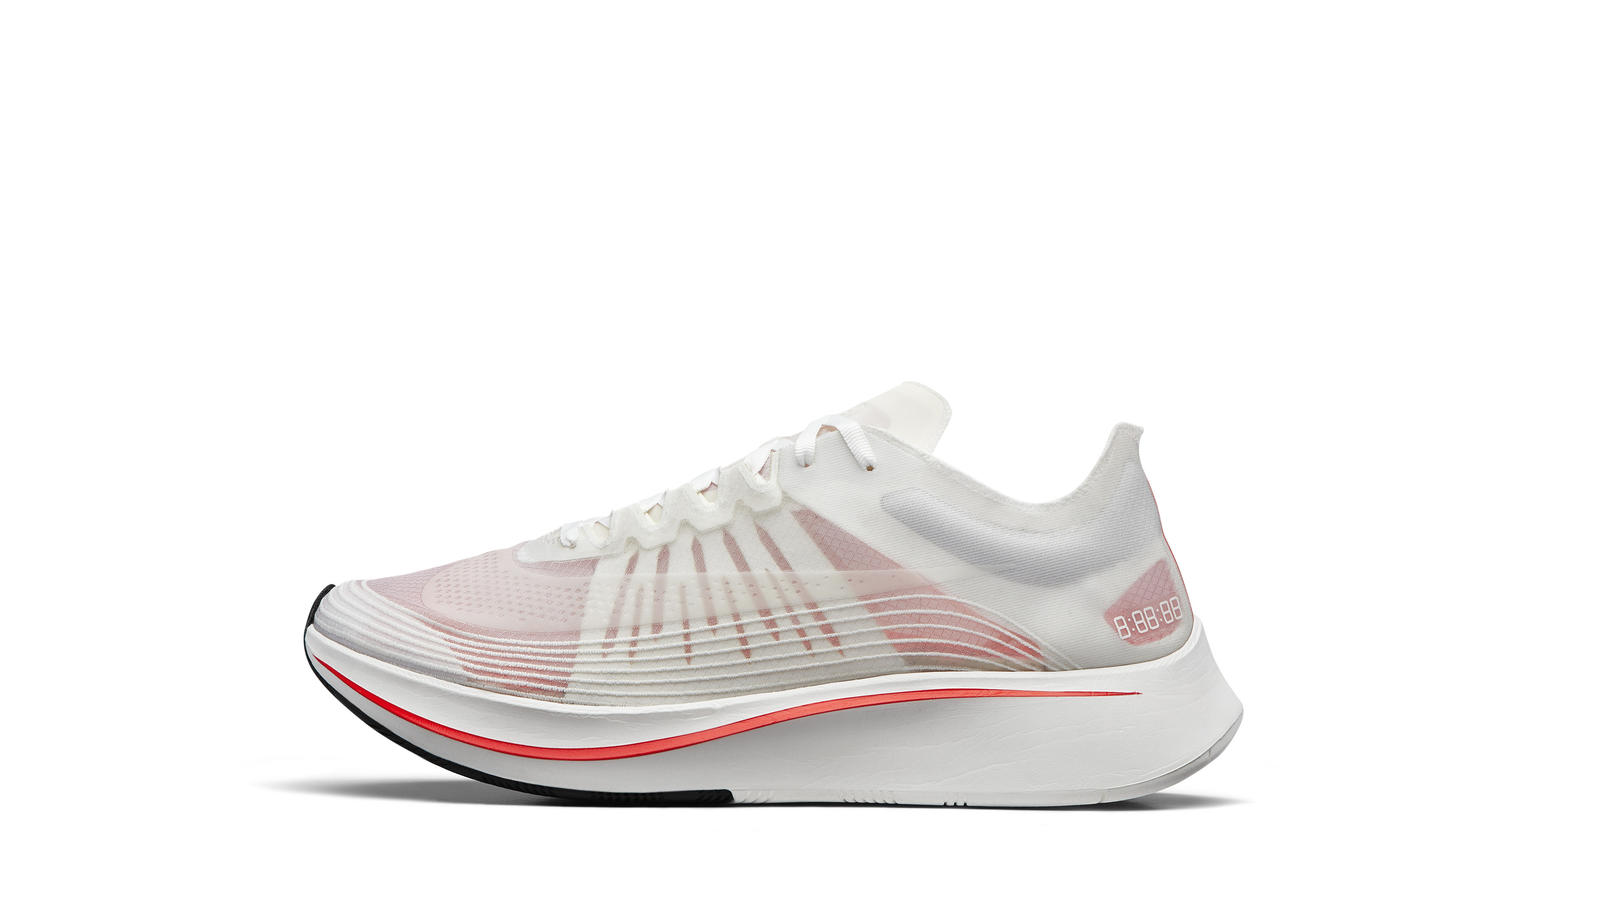 6381fdb3dbd4 NikeLab Zoom Fly SP - Nike News